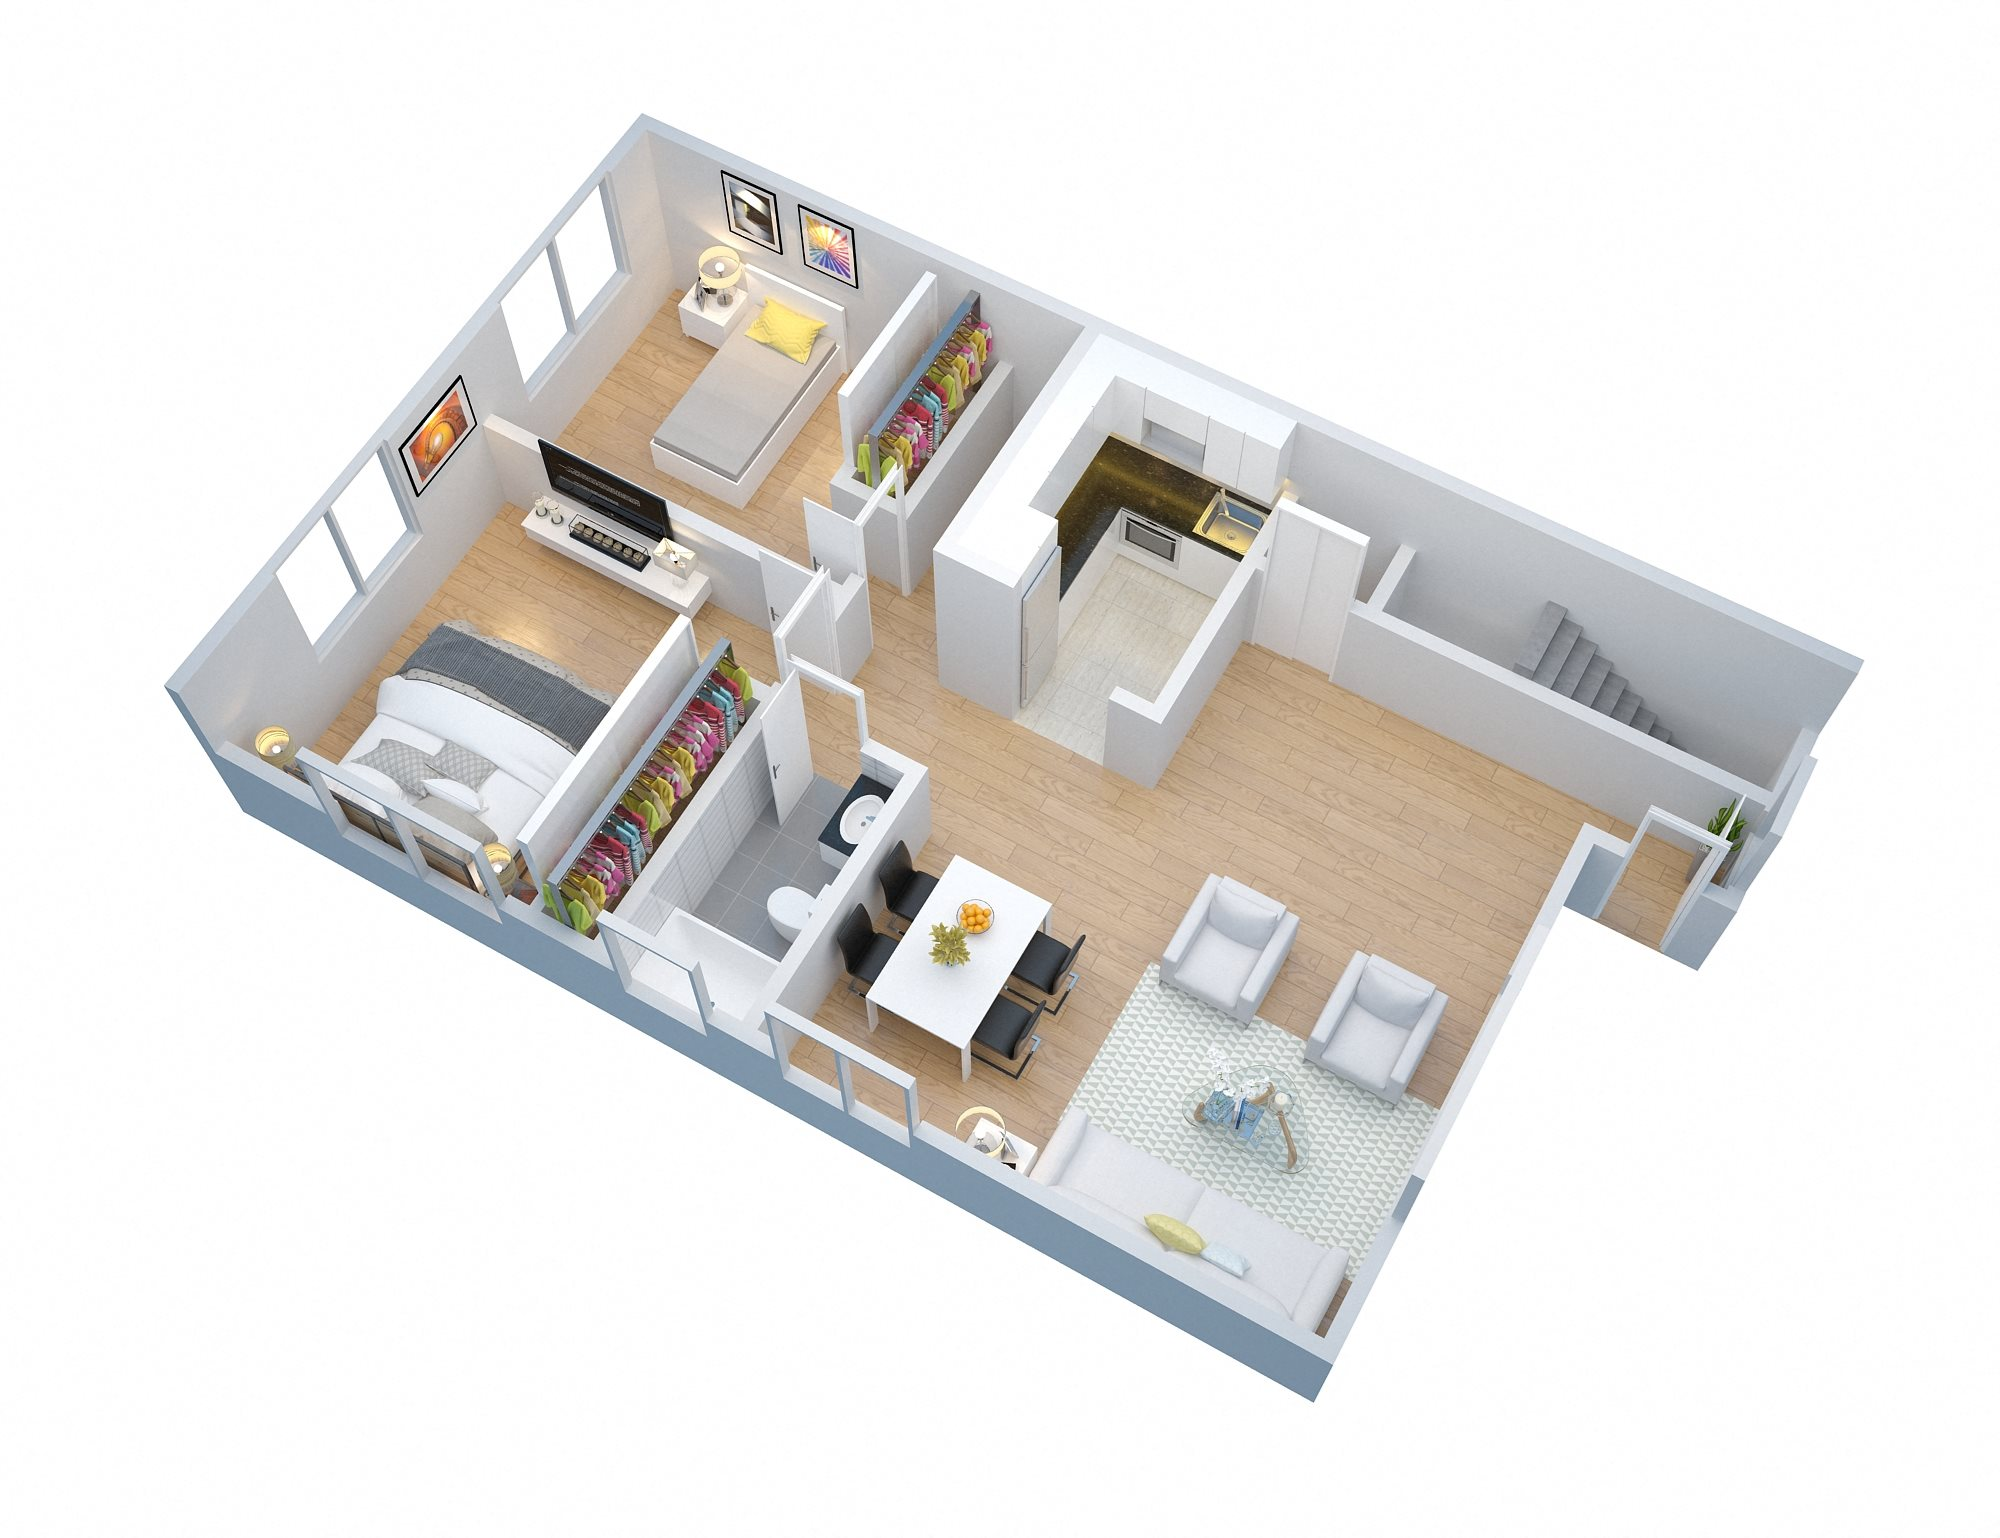 2 Bedroom with Garage Floor Plan 2